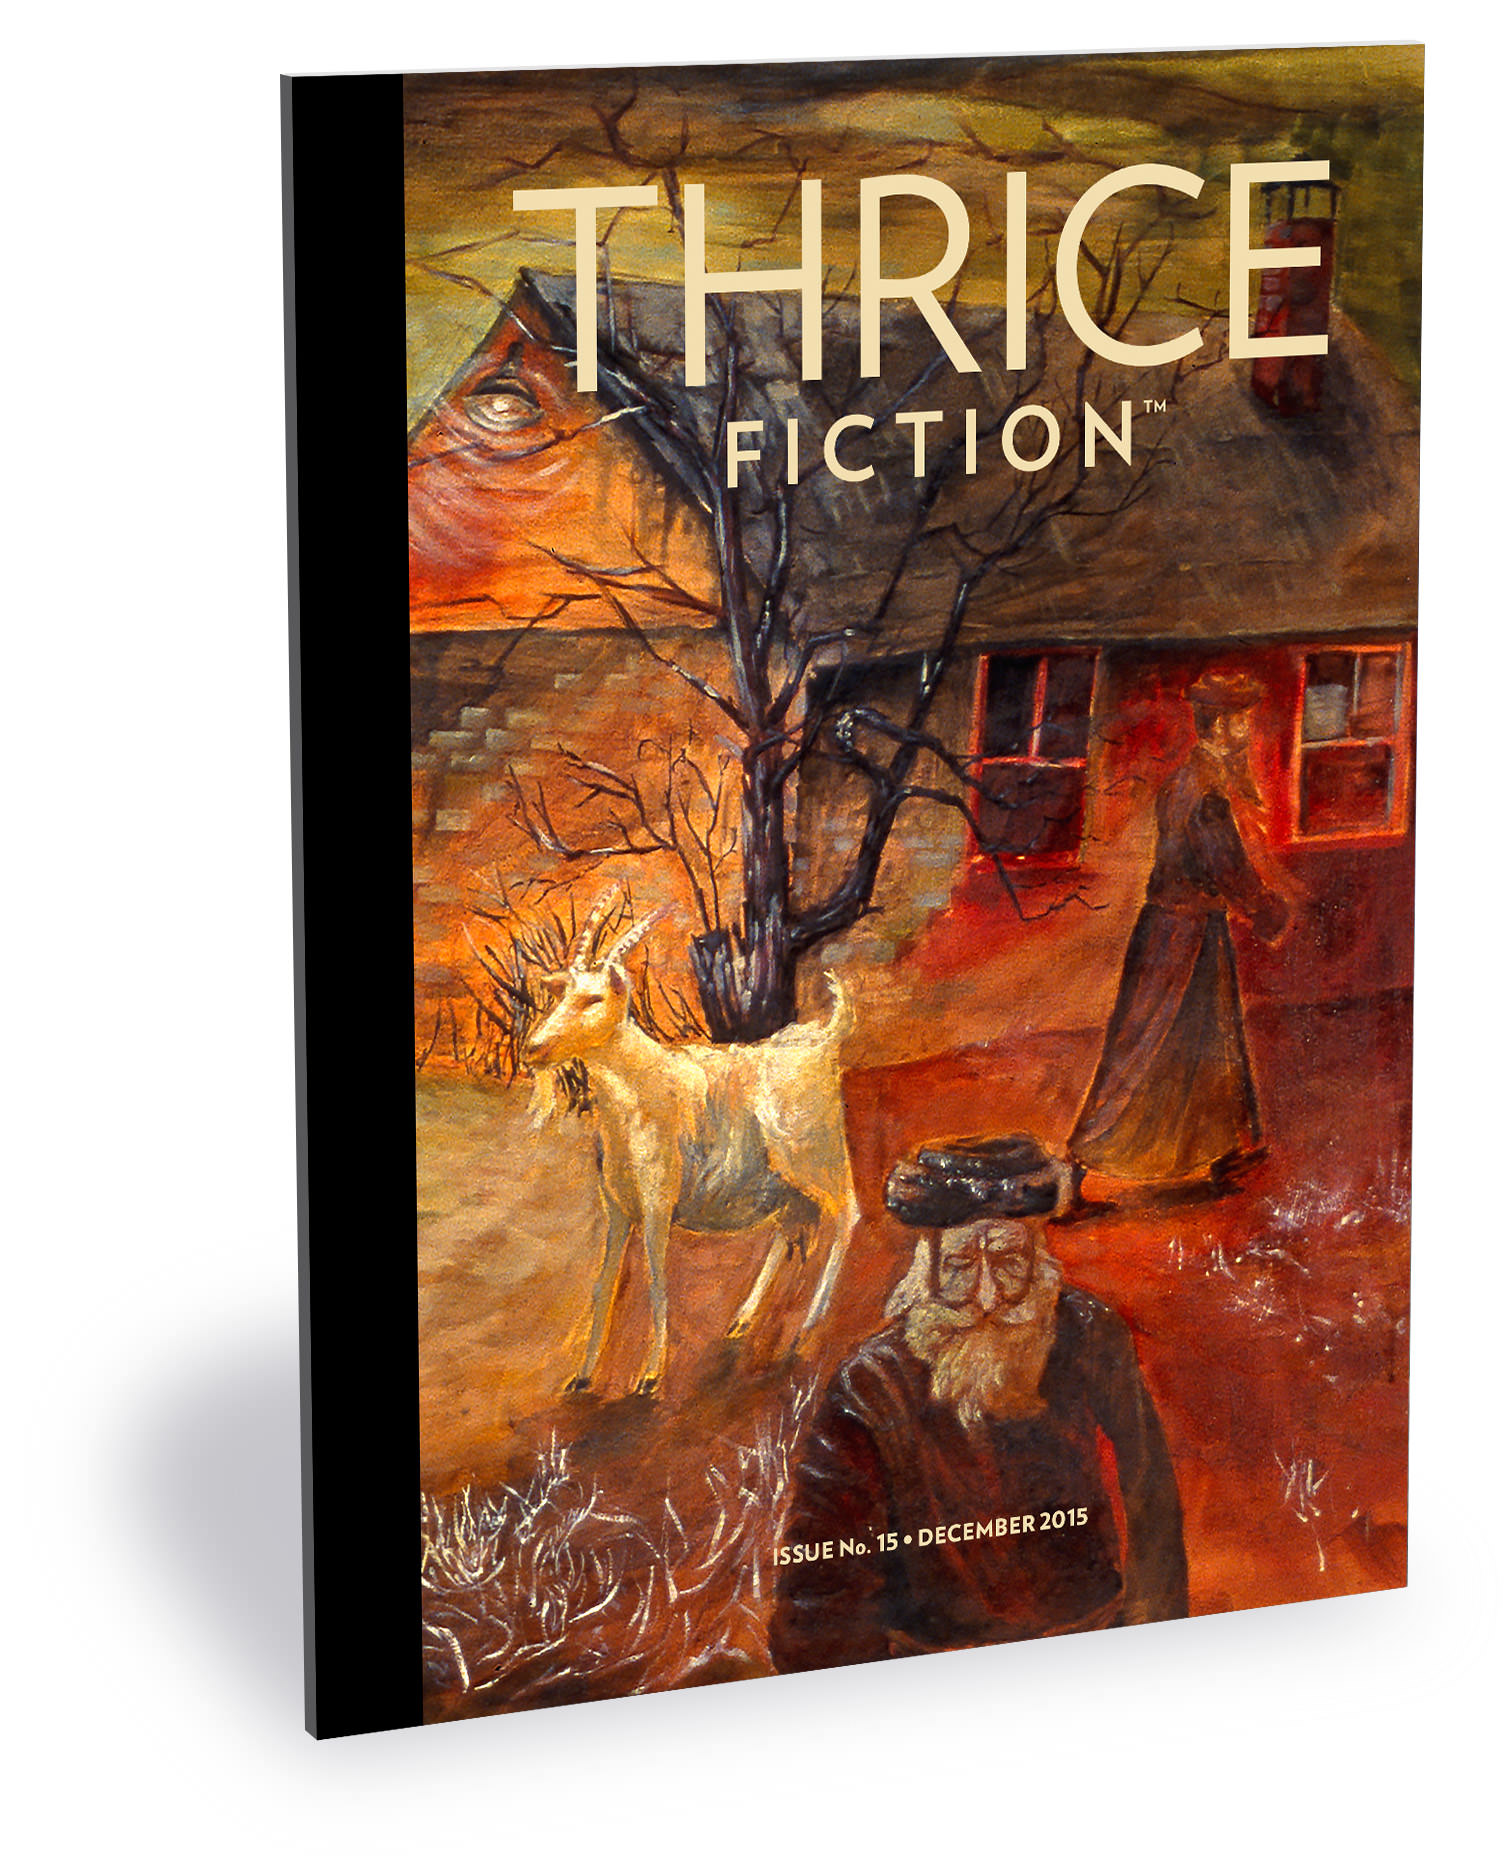 Thrice Fiction No. 15